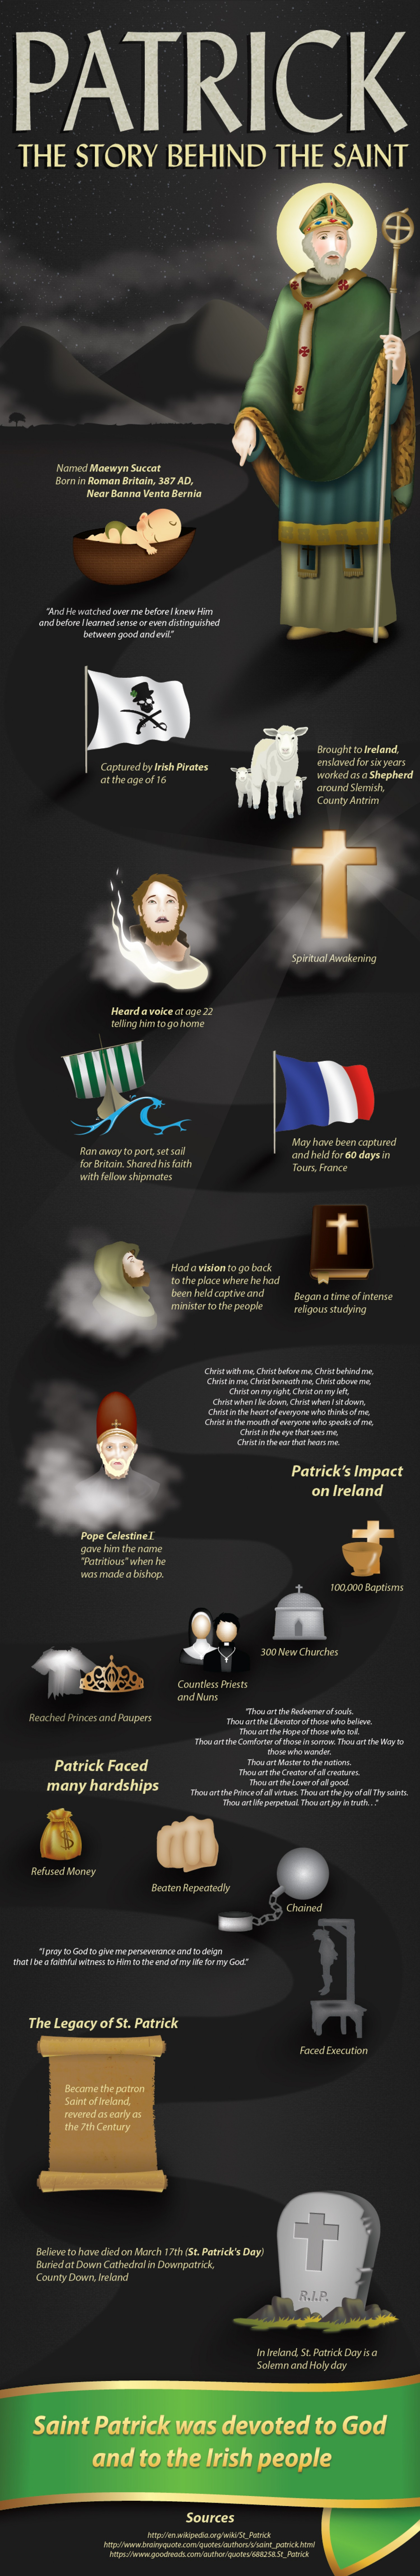 About St Patrick